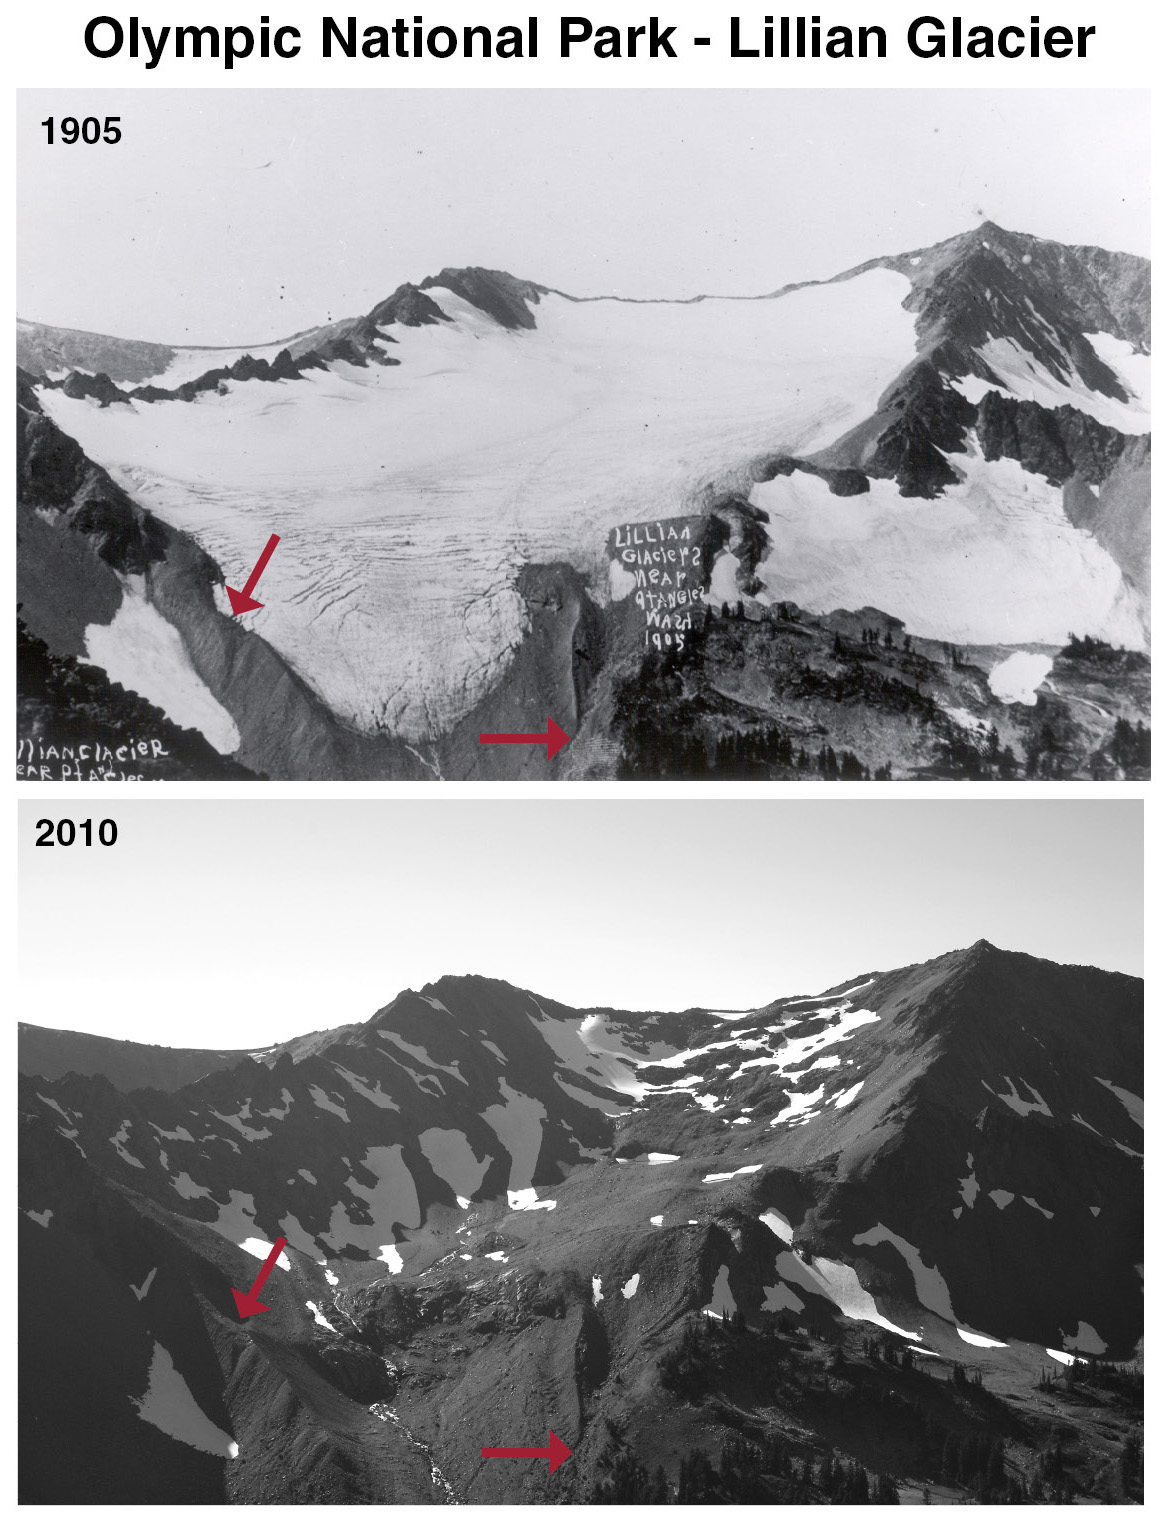 Lillian Glacier 1905-2010 pair